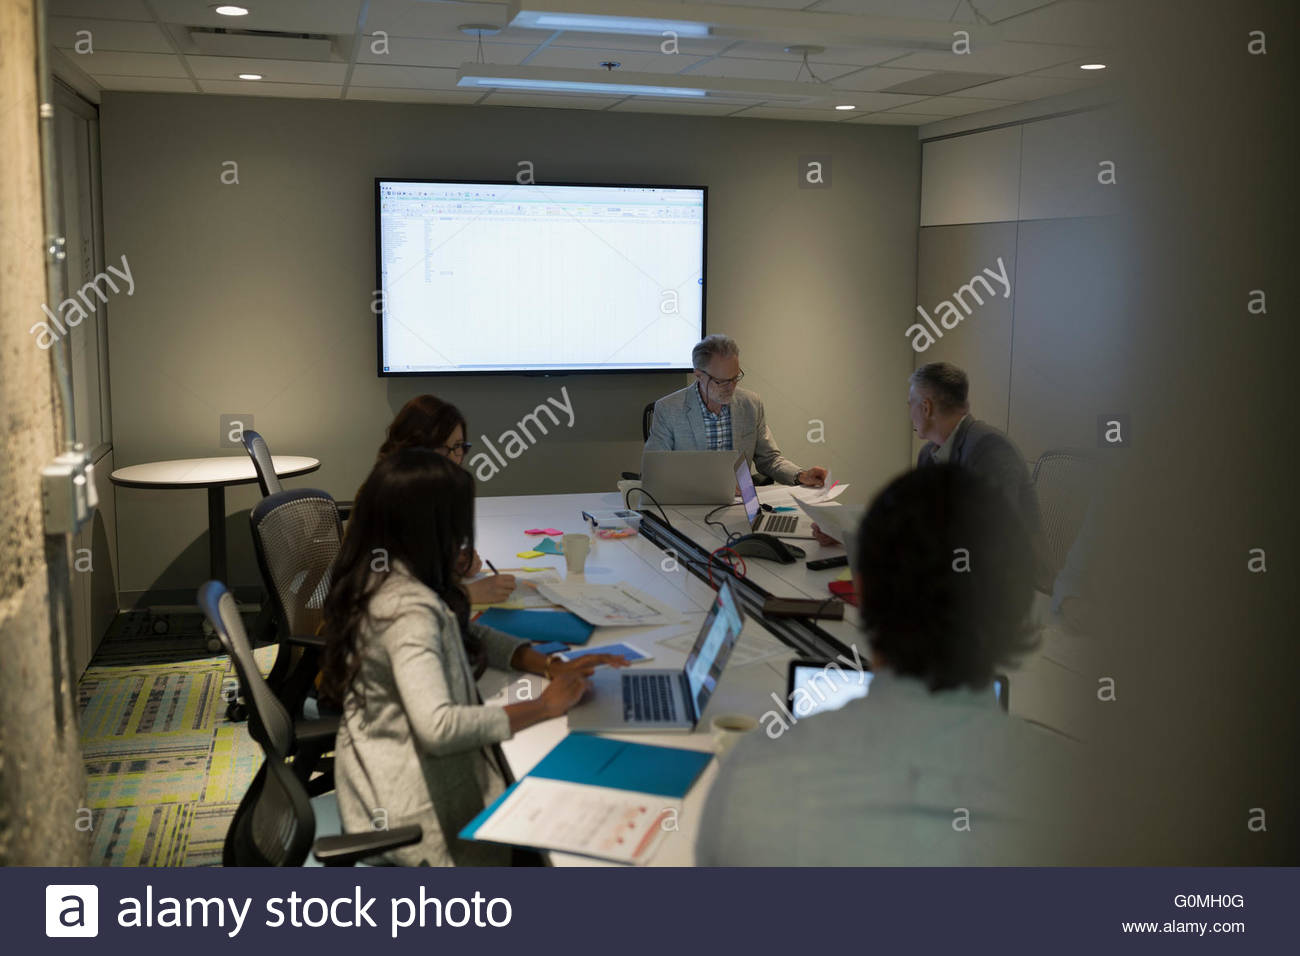 Business people working in conference room meeting - Stock Image